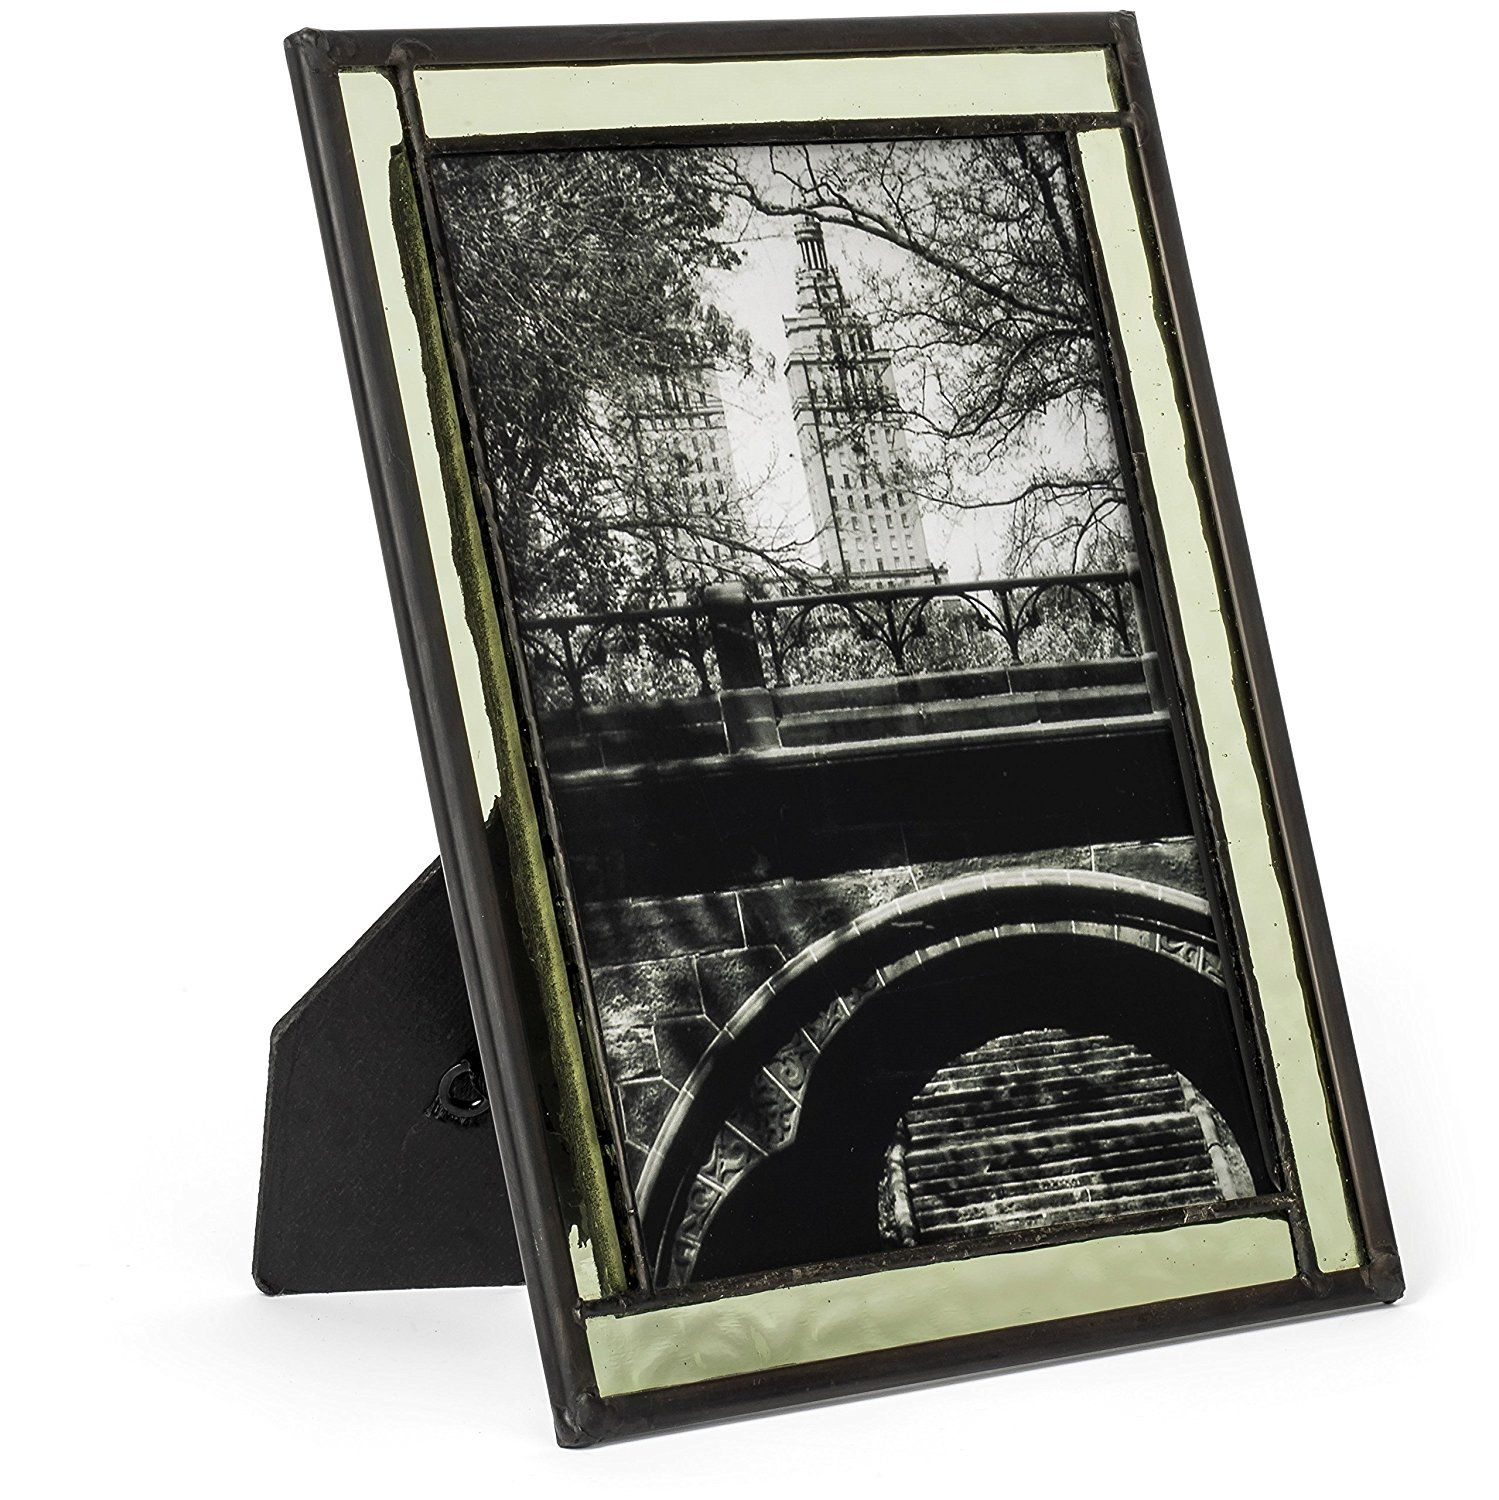 J devlin pic 364 57hv stained glass photo frame sage green 5x7 j devlin pic 364 57hv stained glass photo frame sage green 5x7 easel back frame jeuxipadfo Image collections